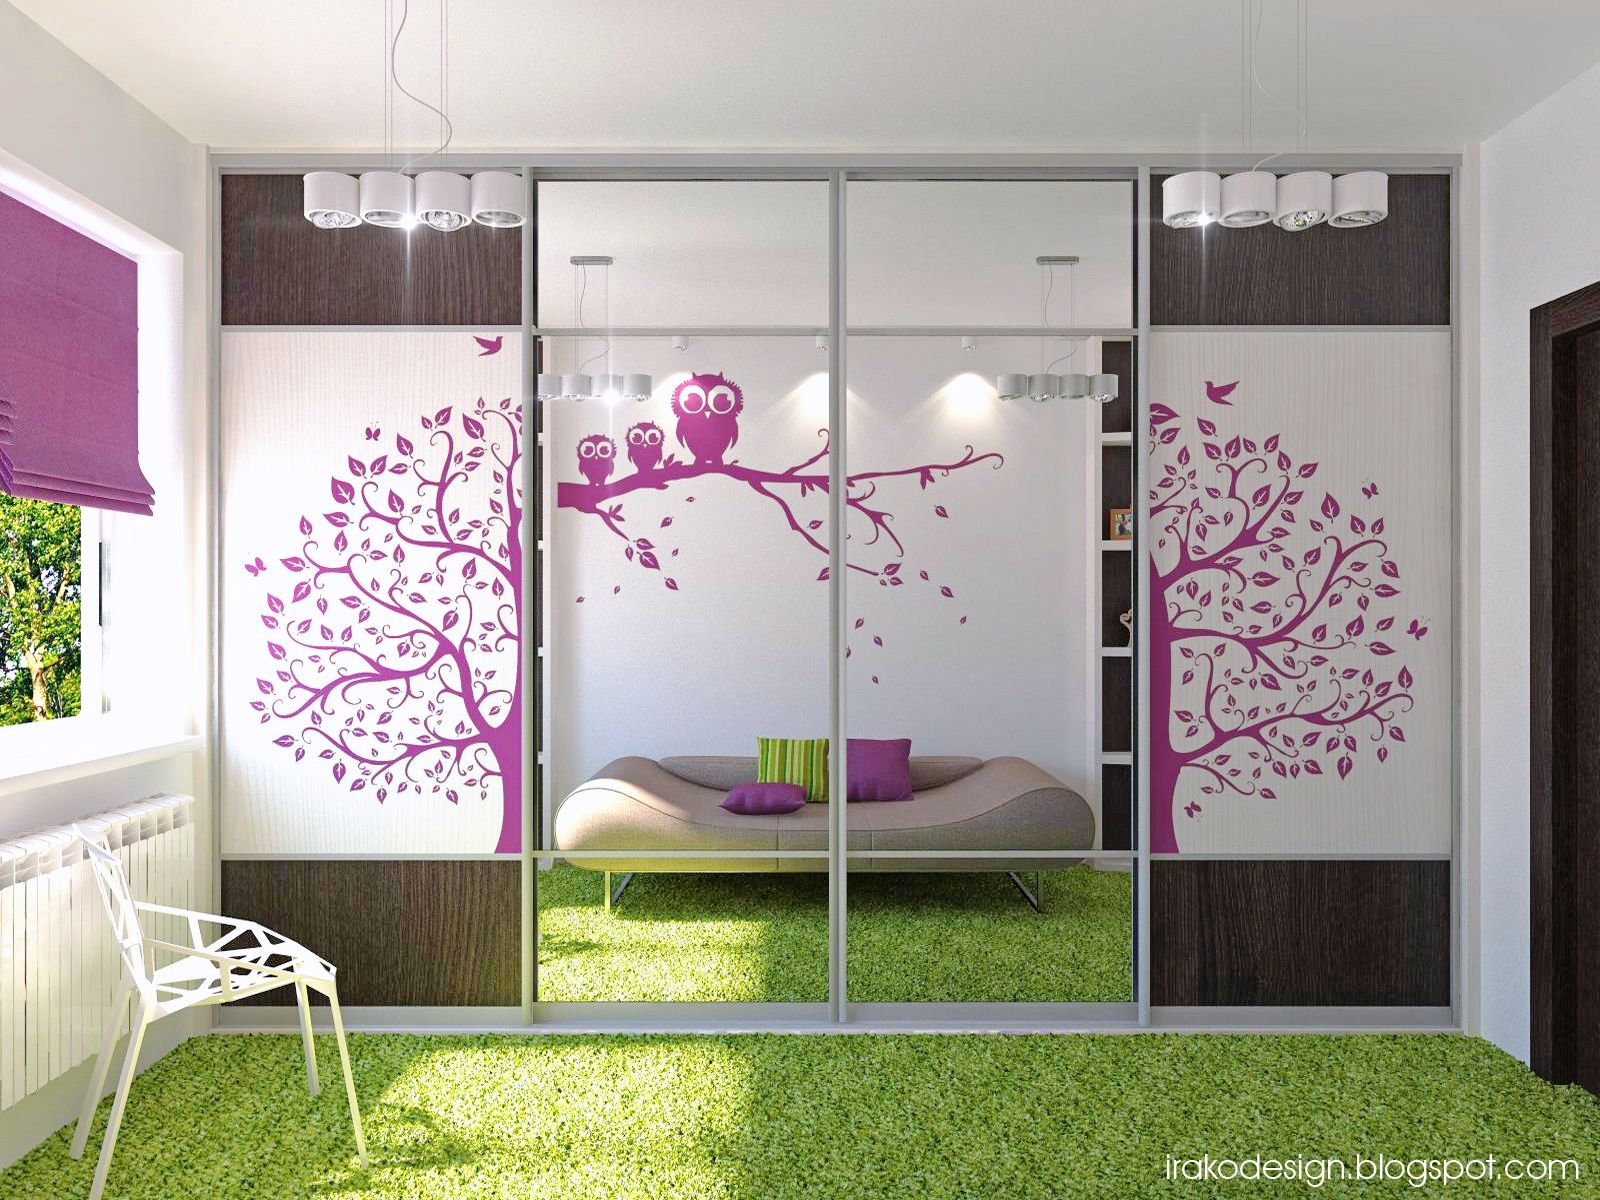 Teenage Girl Room Decor 16 Contemporary Living Room Design Inspirations 2012  Room Decor